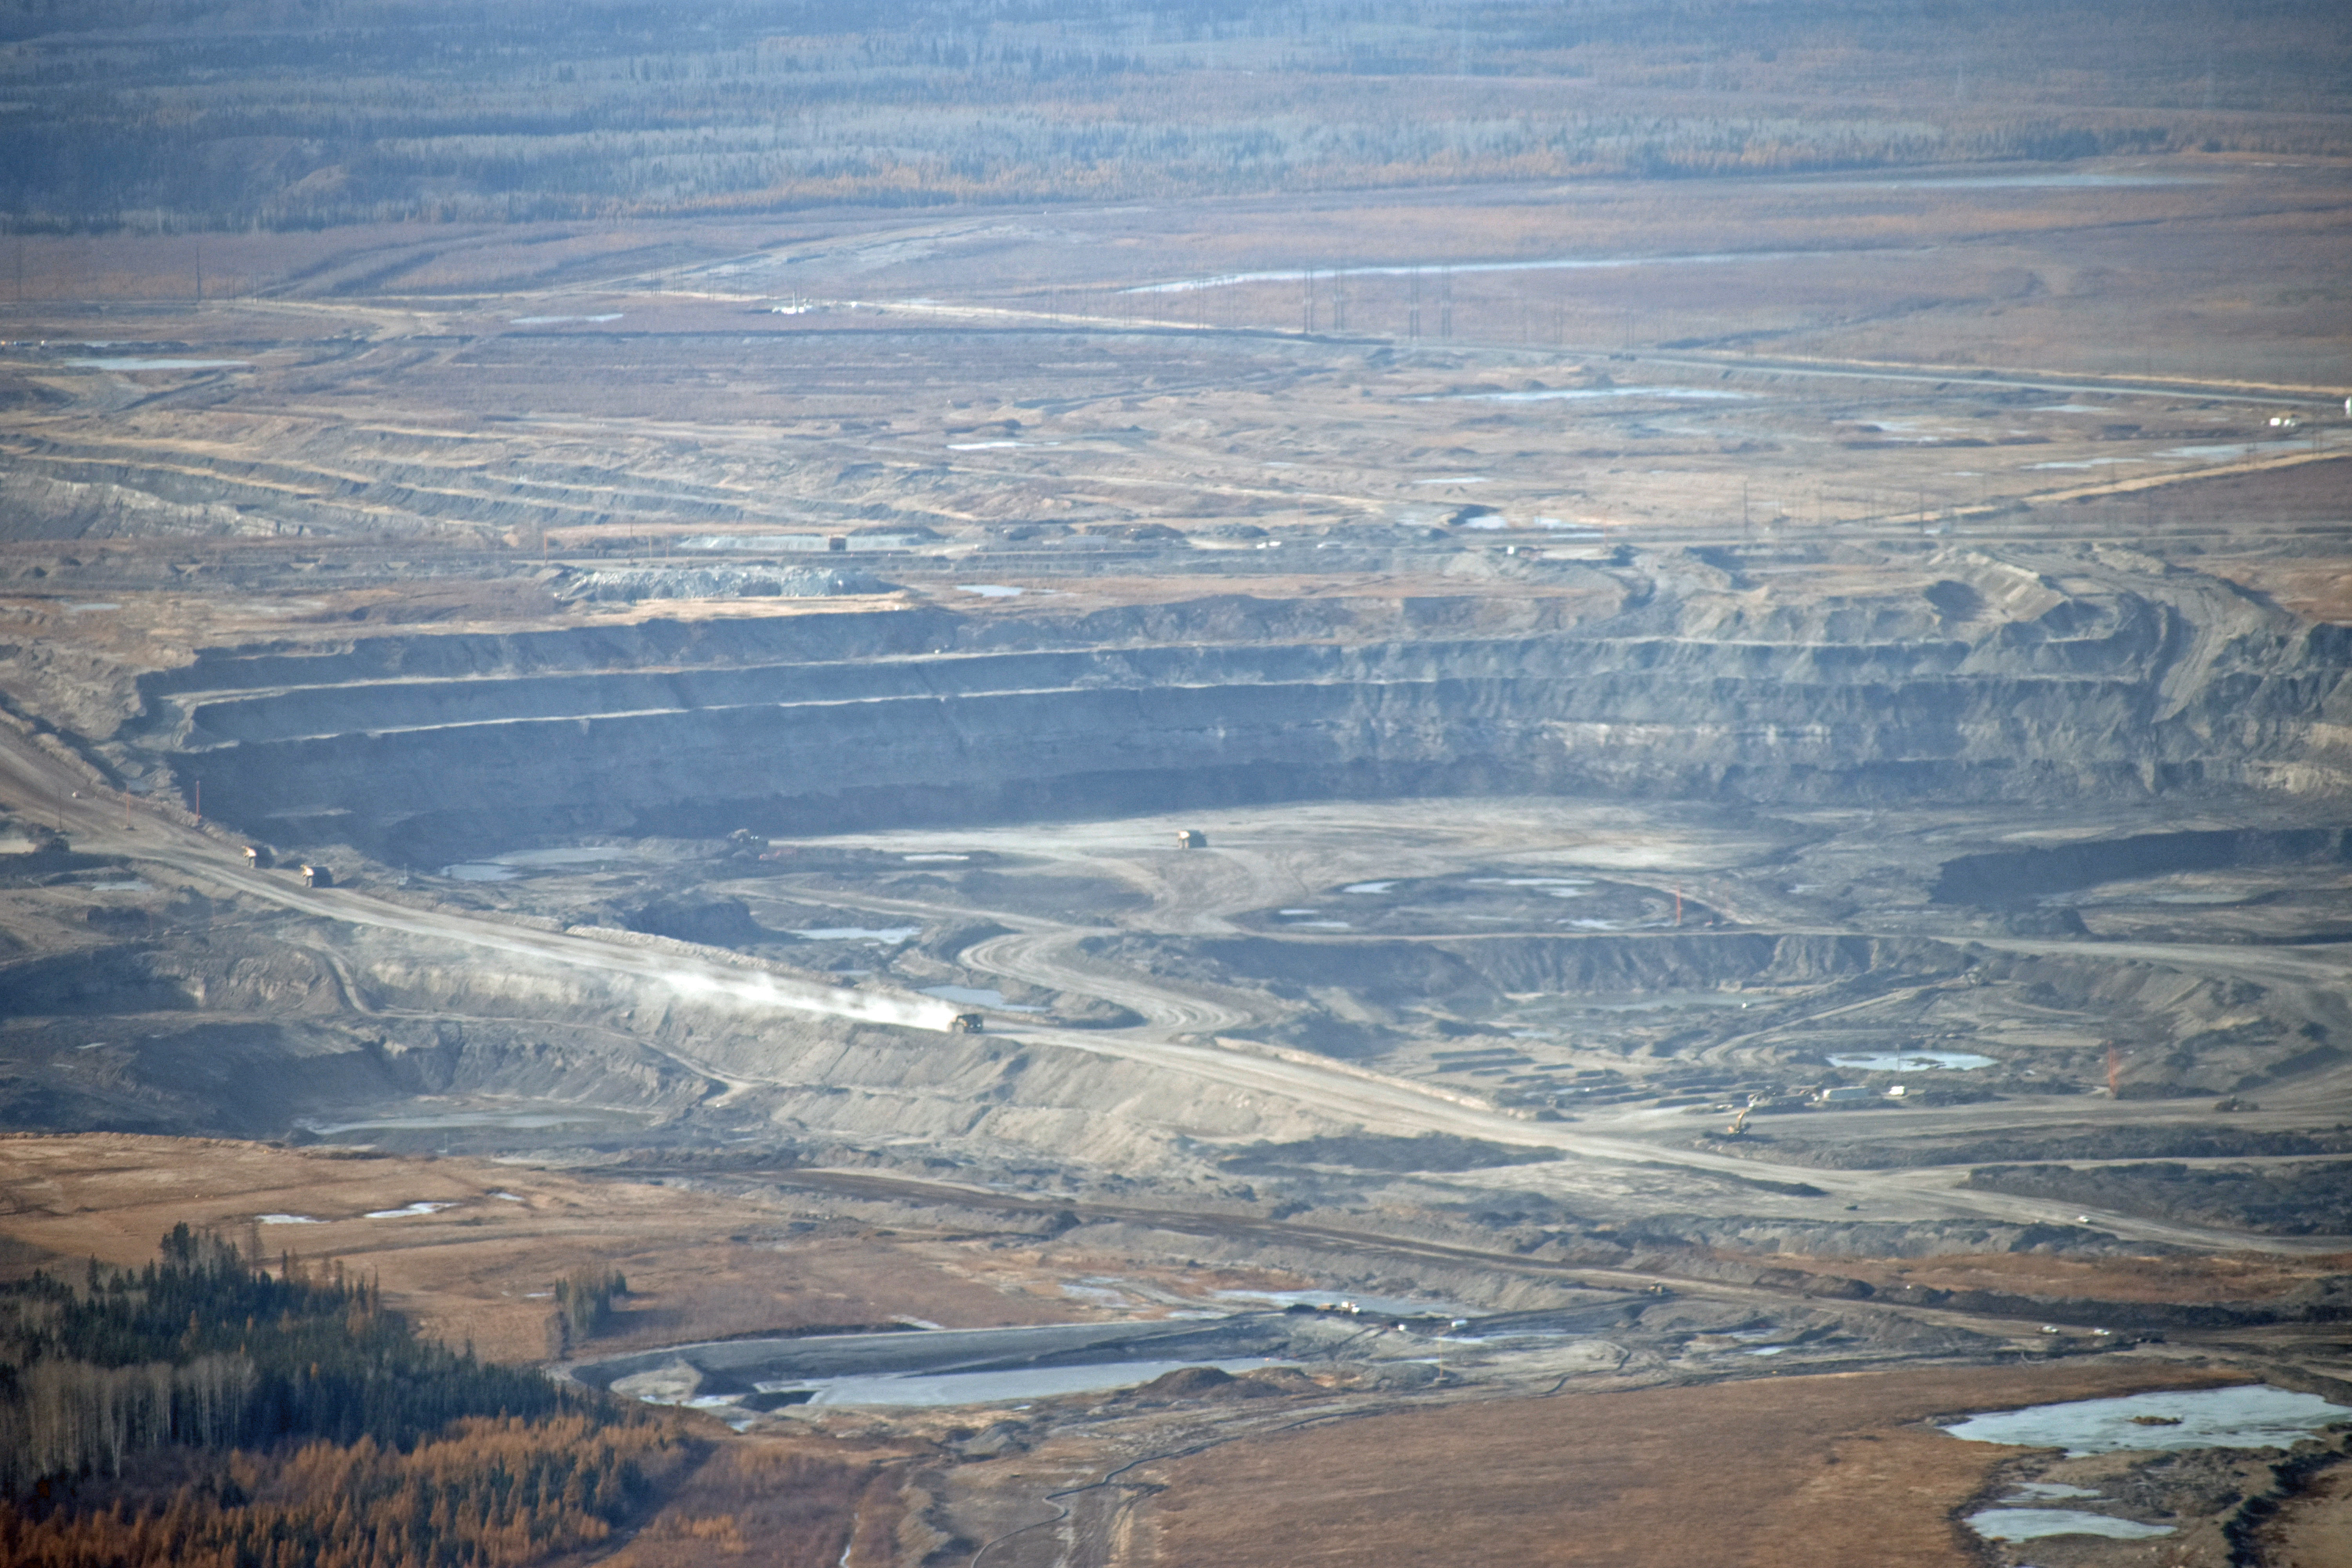 Oilsands mines north of Fort McMurray. (Geneviève Normand/CBC Radio-Canada)